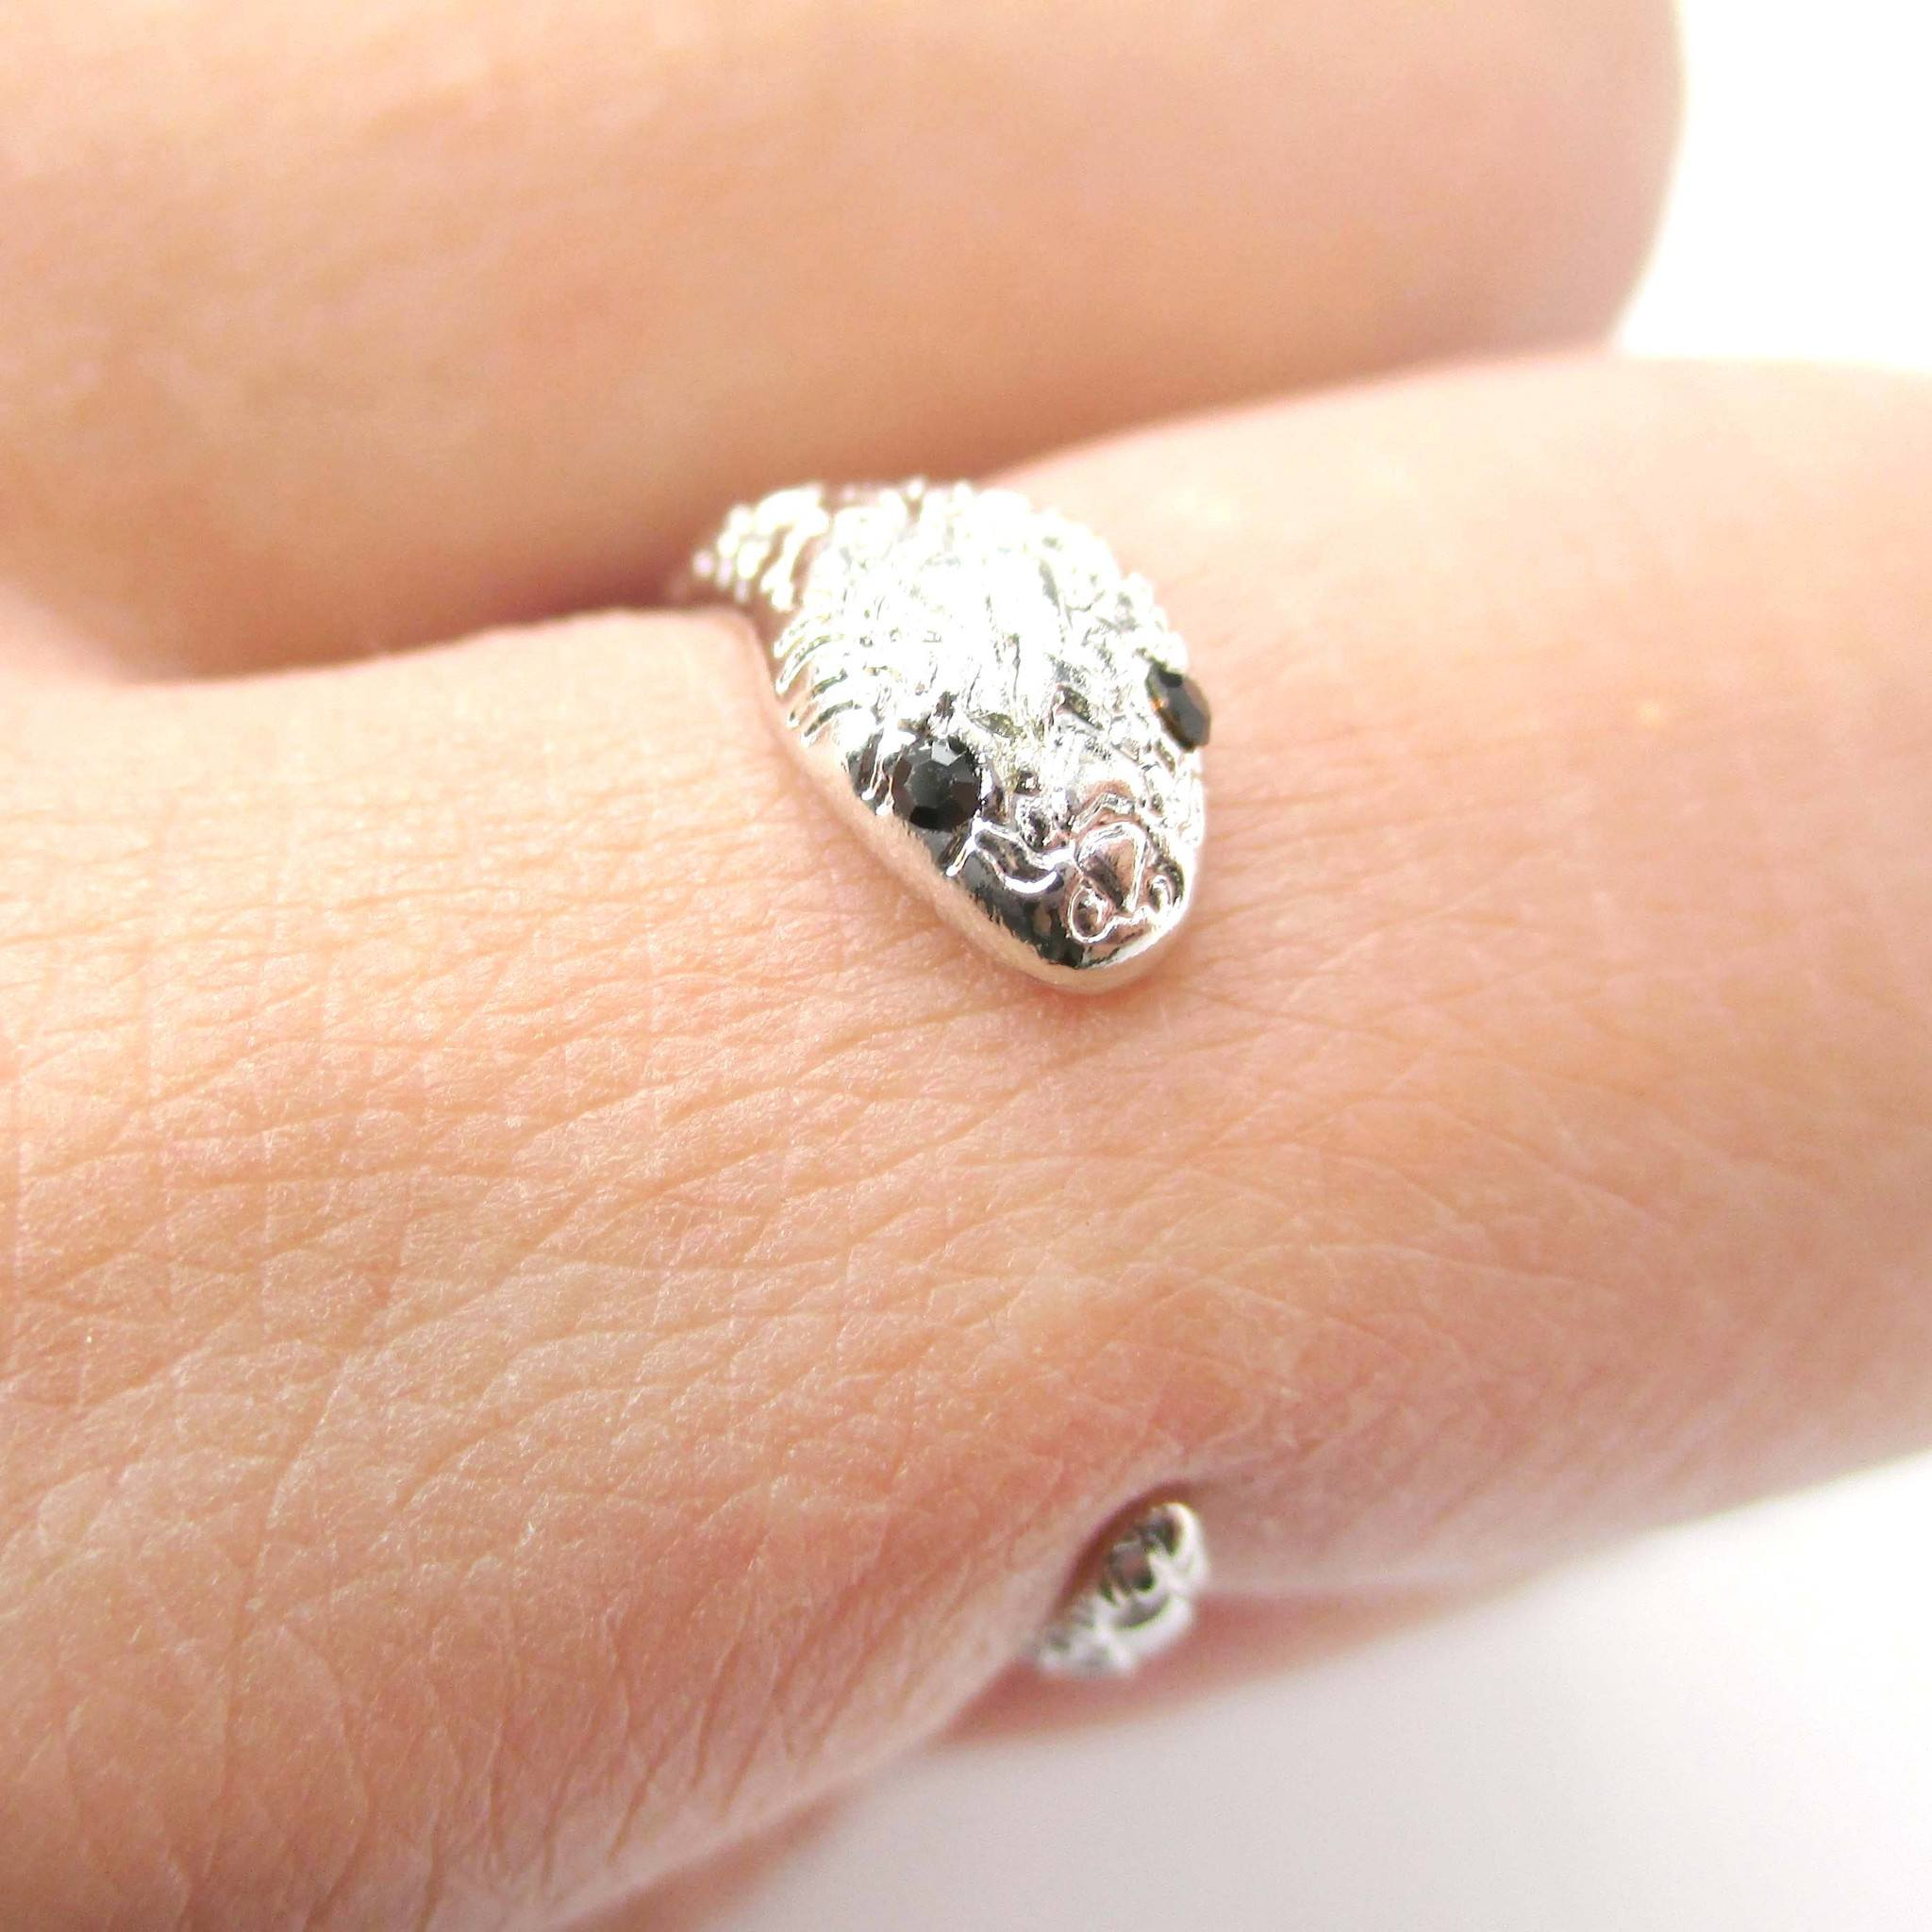 Tiny Baby Snake Hugging Your Finger Ring in Silver